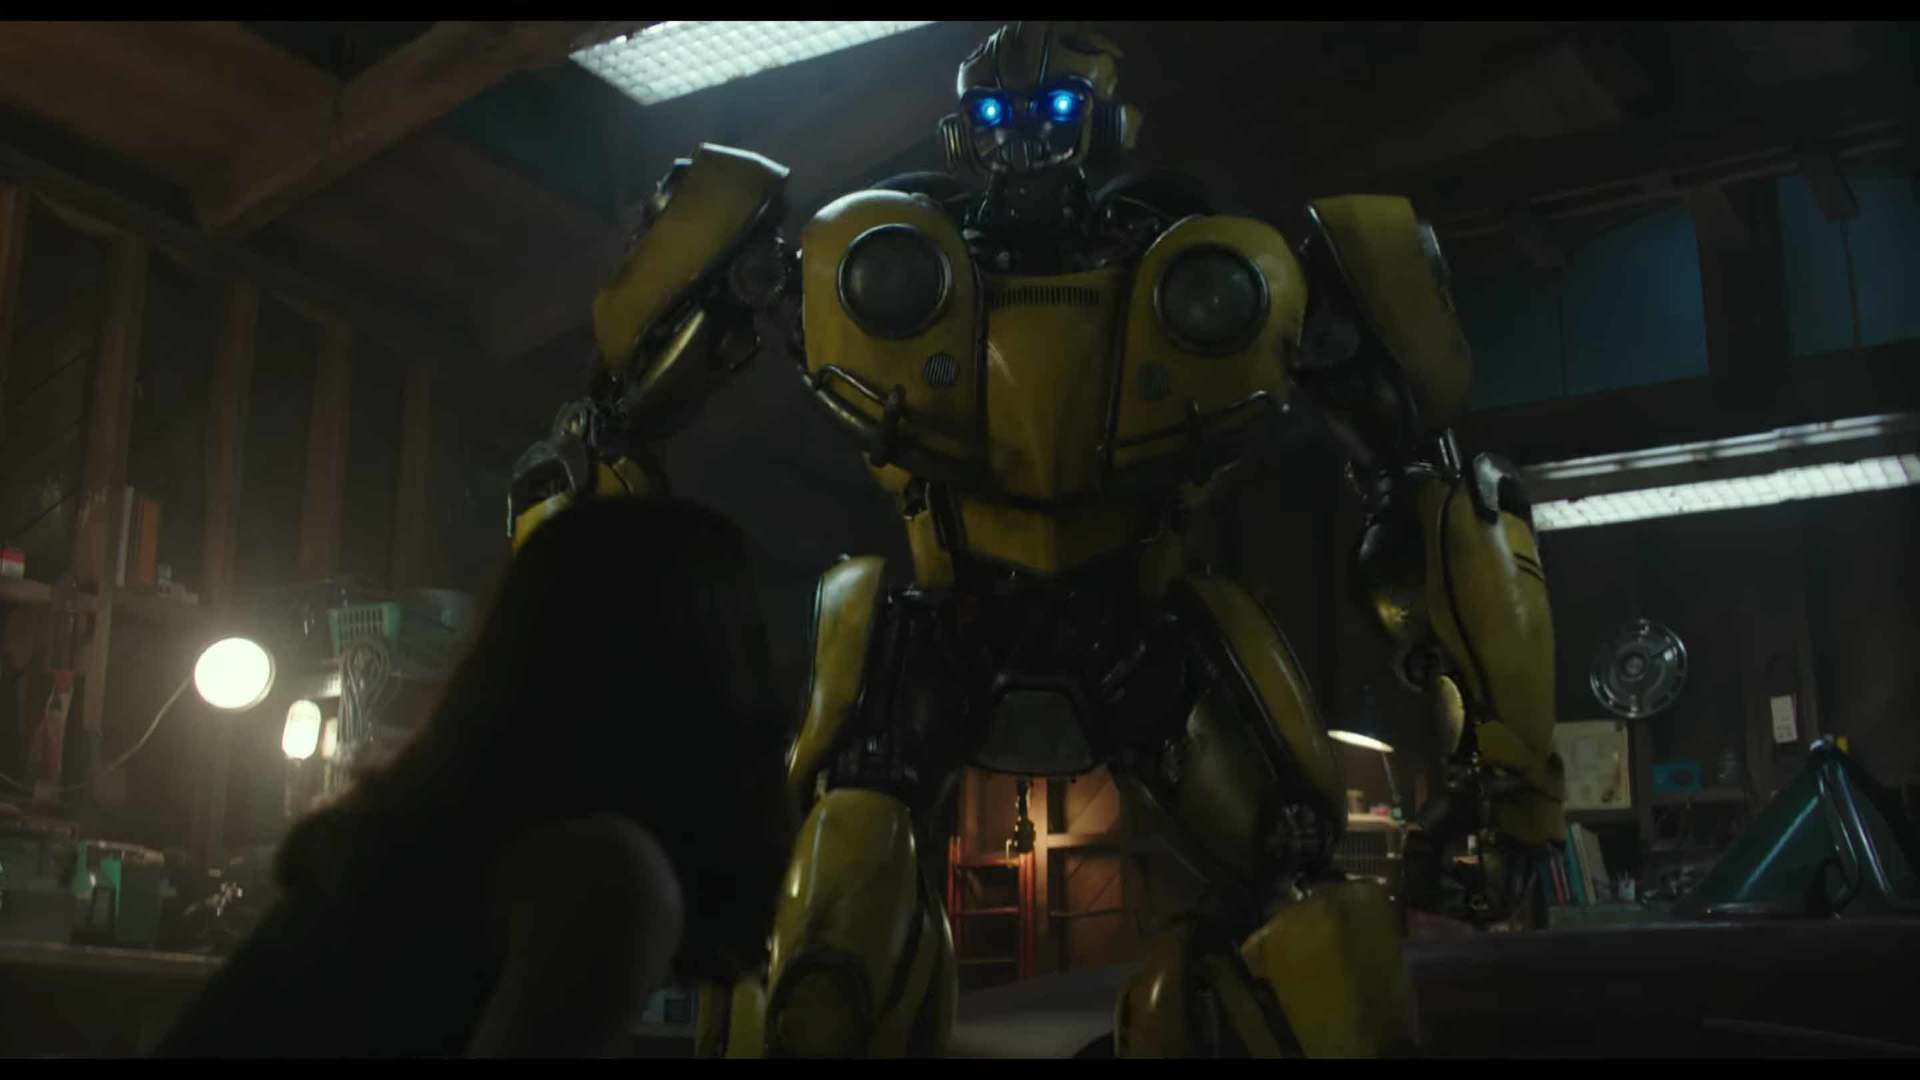 Bumblebee Swaps Chevy Camaro For VW Beetle In Transformers Spinoff